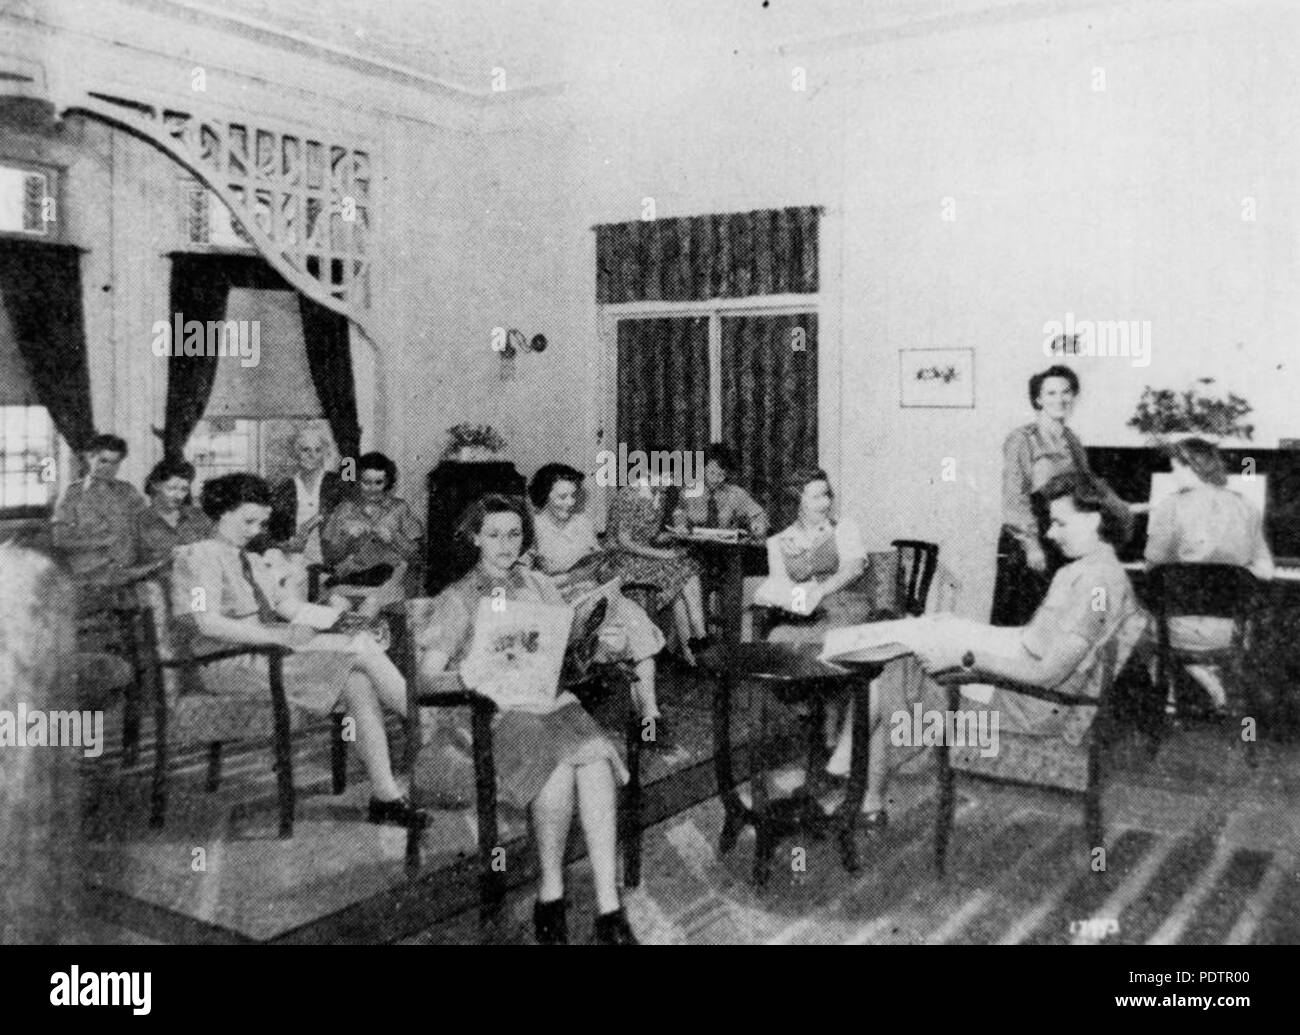 200 StateLibQld 1 103067 Group of servicewomen in the lounge room at 'Wairuna' in Highgate Hill, Brisbane in the 1940s - Stock Image